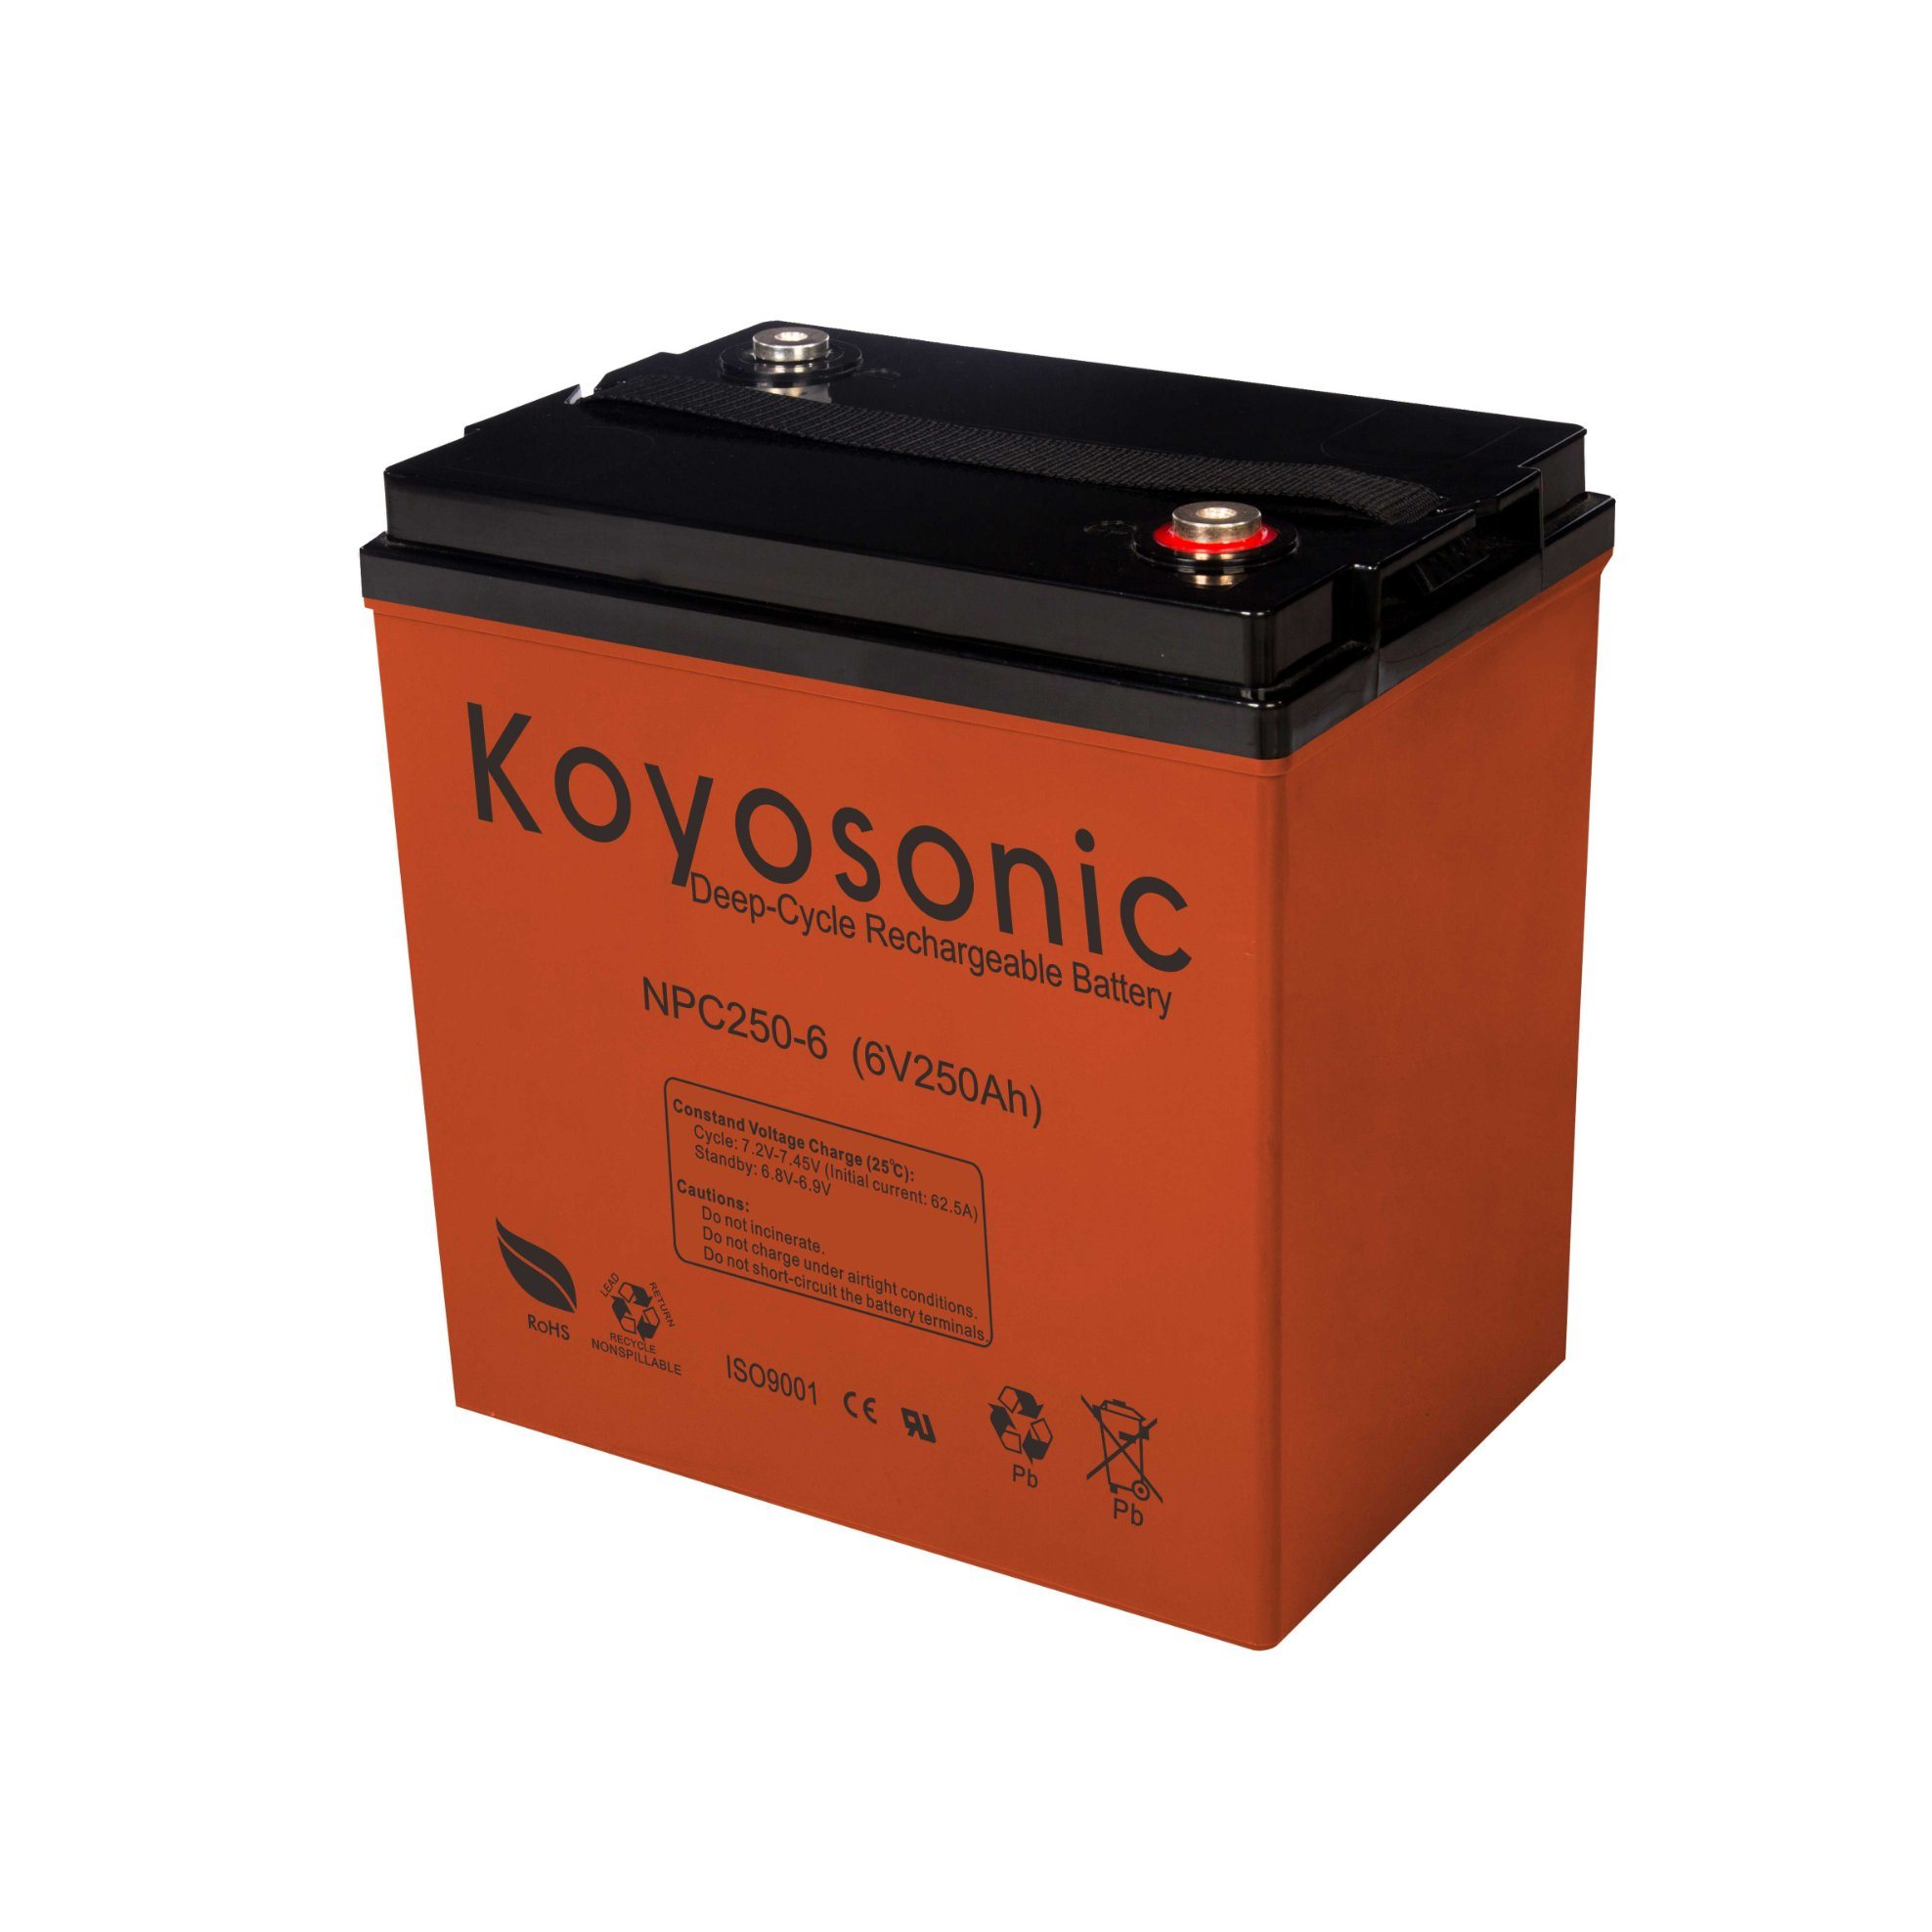 China Like Trojan 6v 225ah Agm Deep Cycle Battery Golf Cart Battery For Crown Cleaning Machine China Cleaning Machine Battery Sweeper Battery